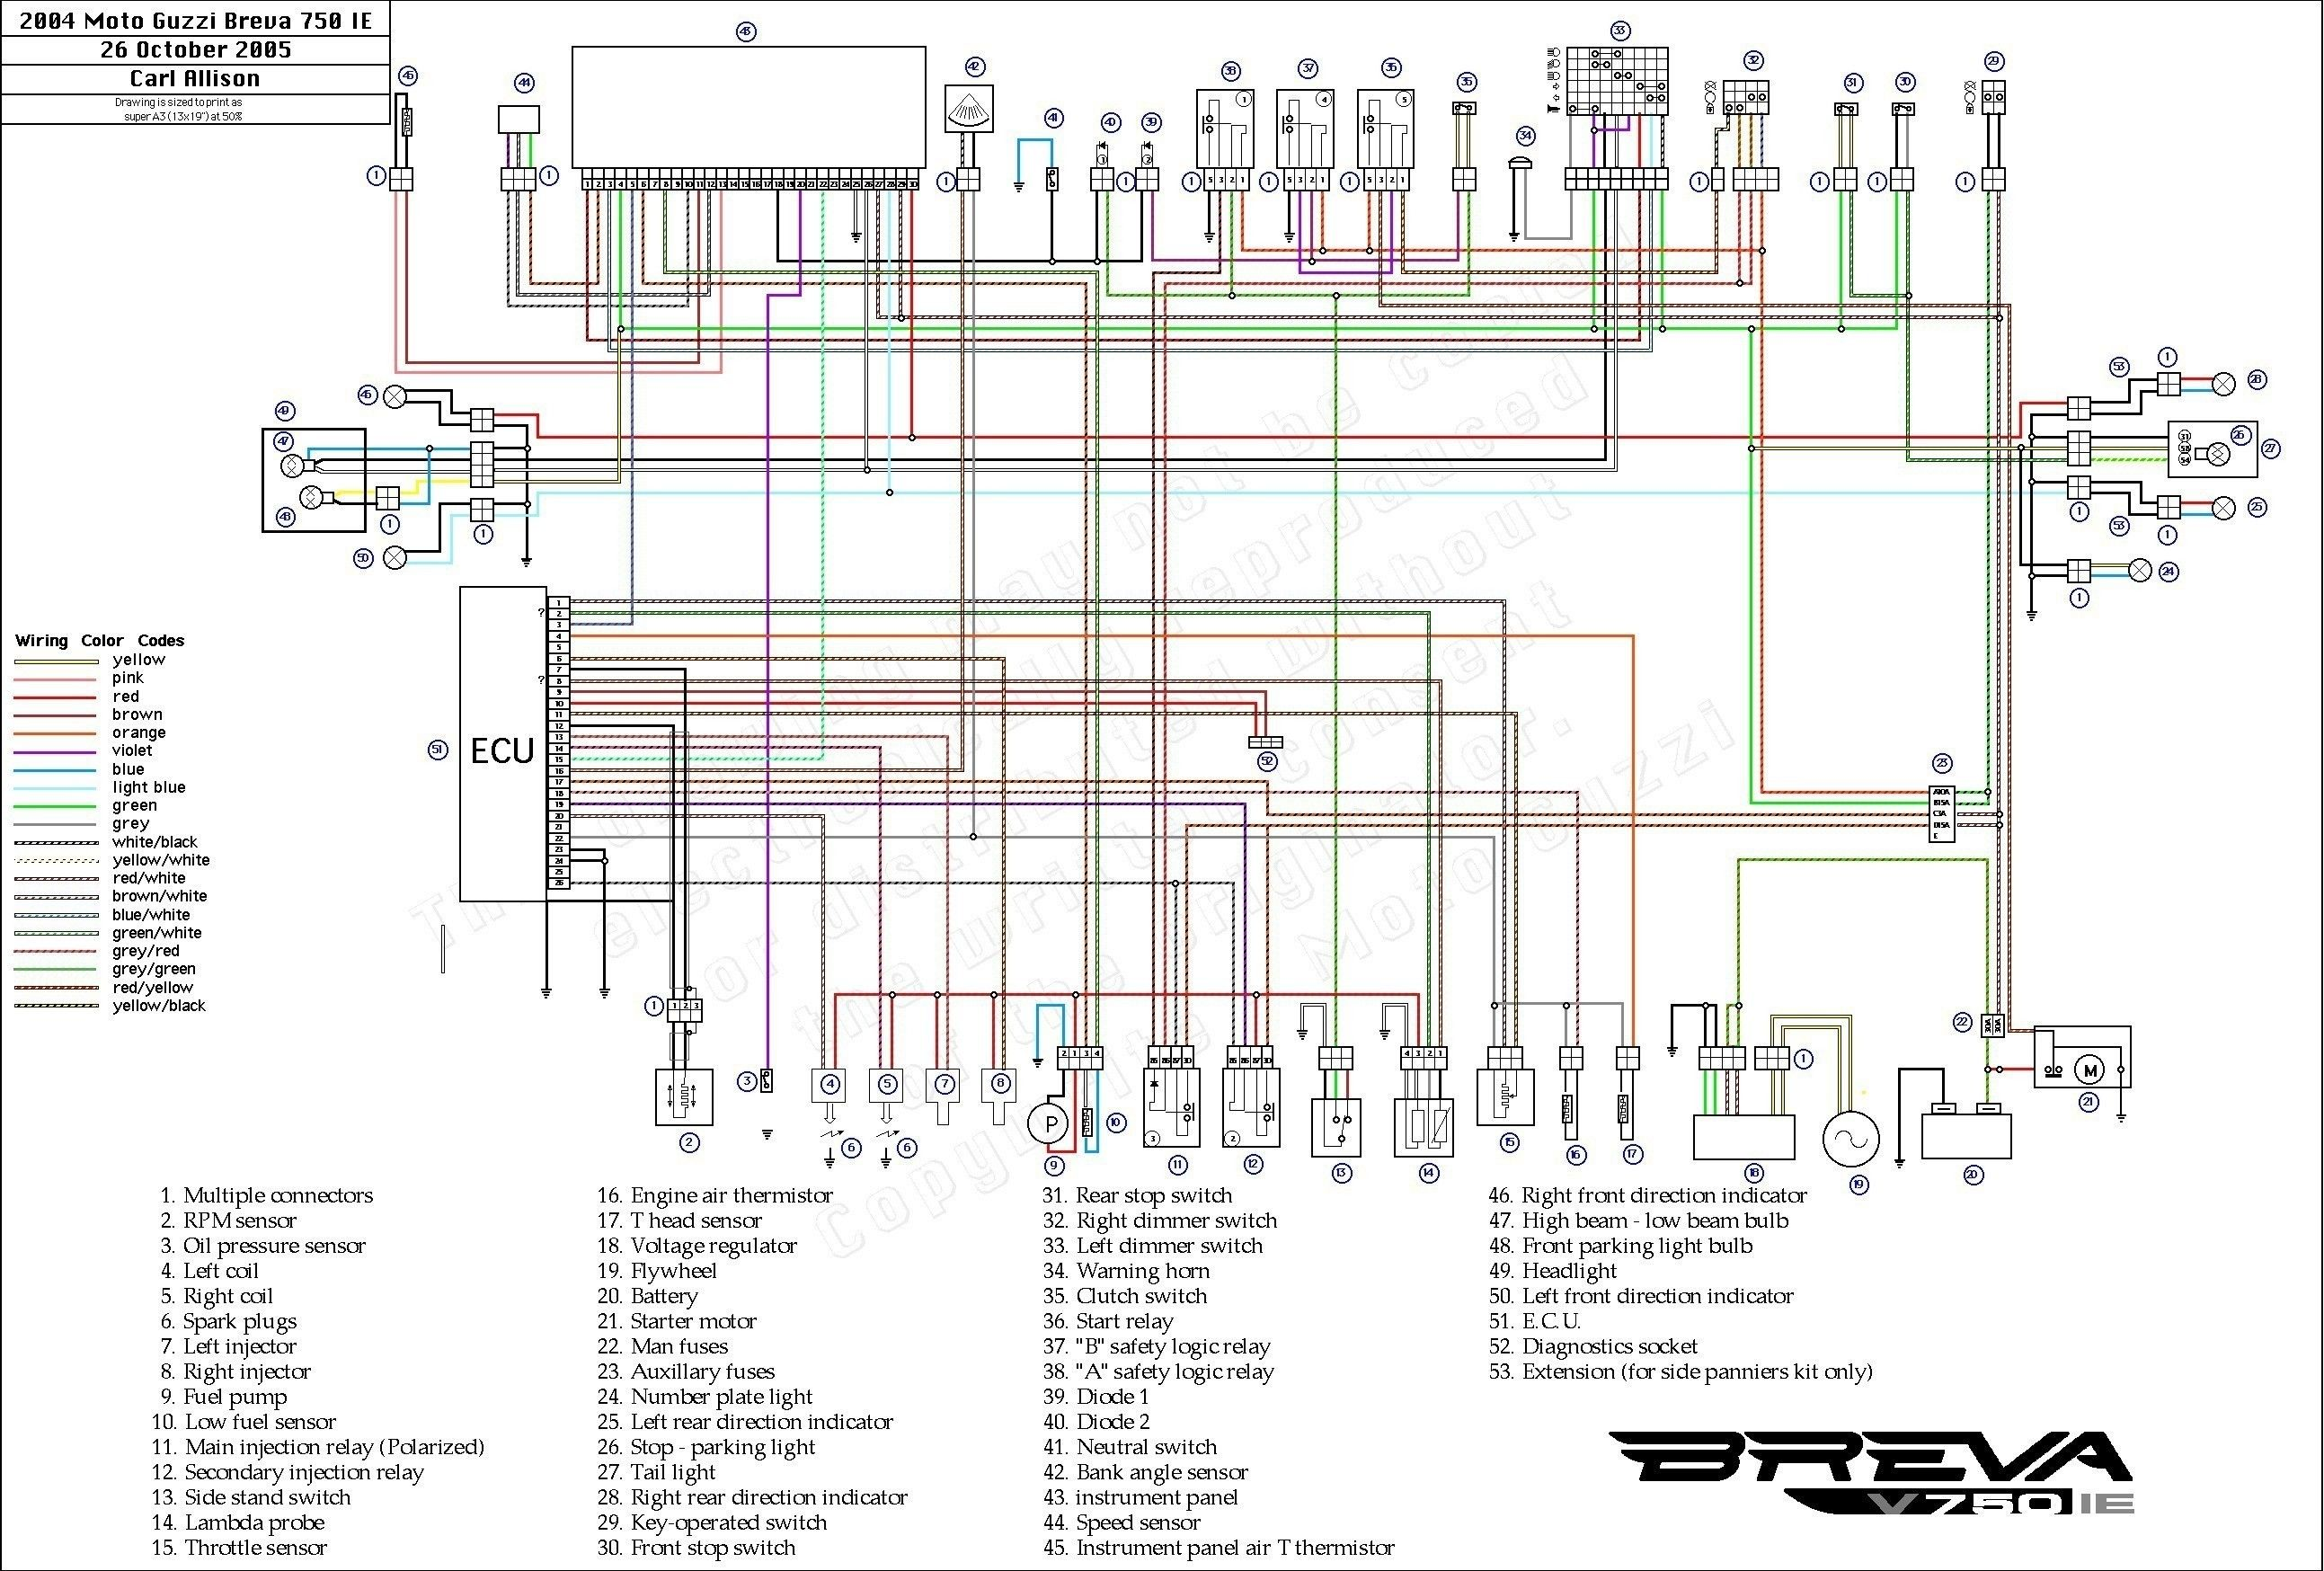 Diagram 1995 Dodge Ram 1500 Headlight Wiring Diagram Full Version Hd Quality Wiring Diagram Fishbone Diagram Emballages Sous Vide Fr